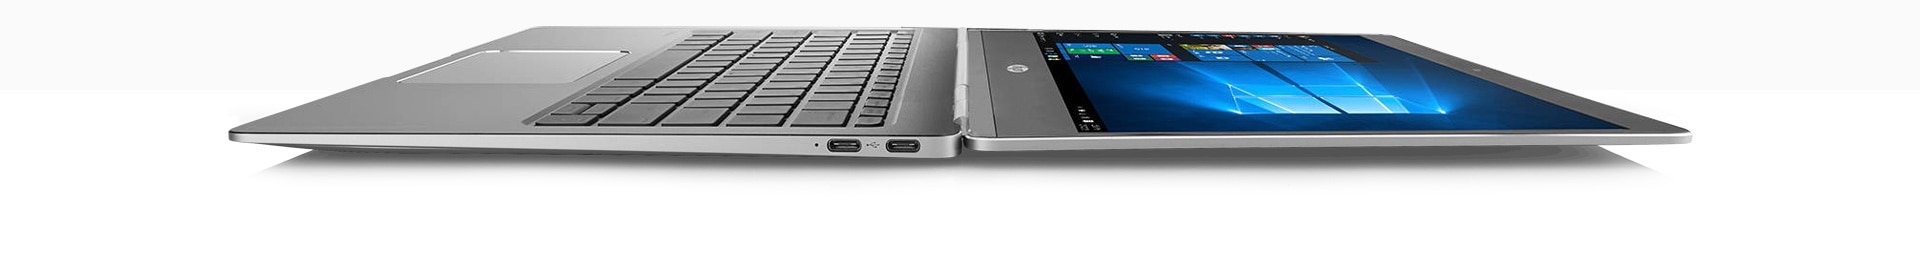 HP EliteBook x360 convertible laptop